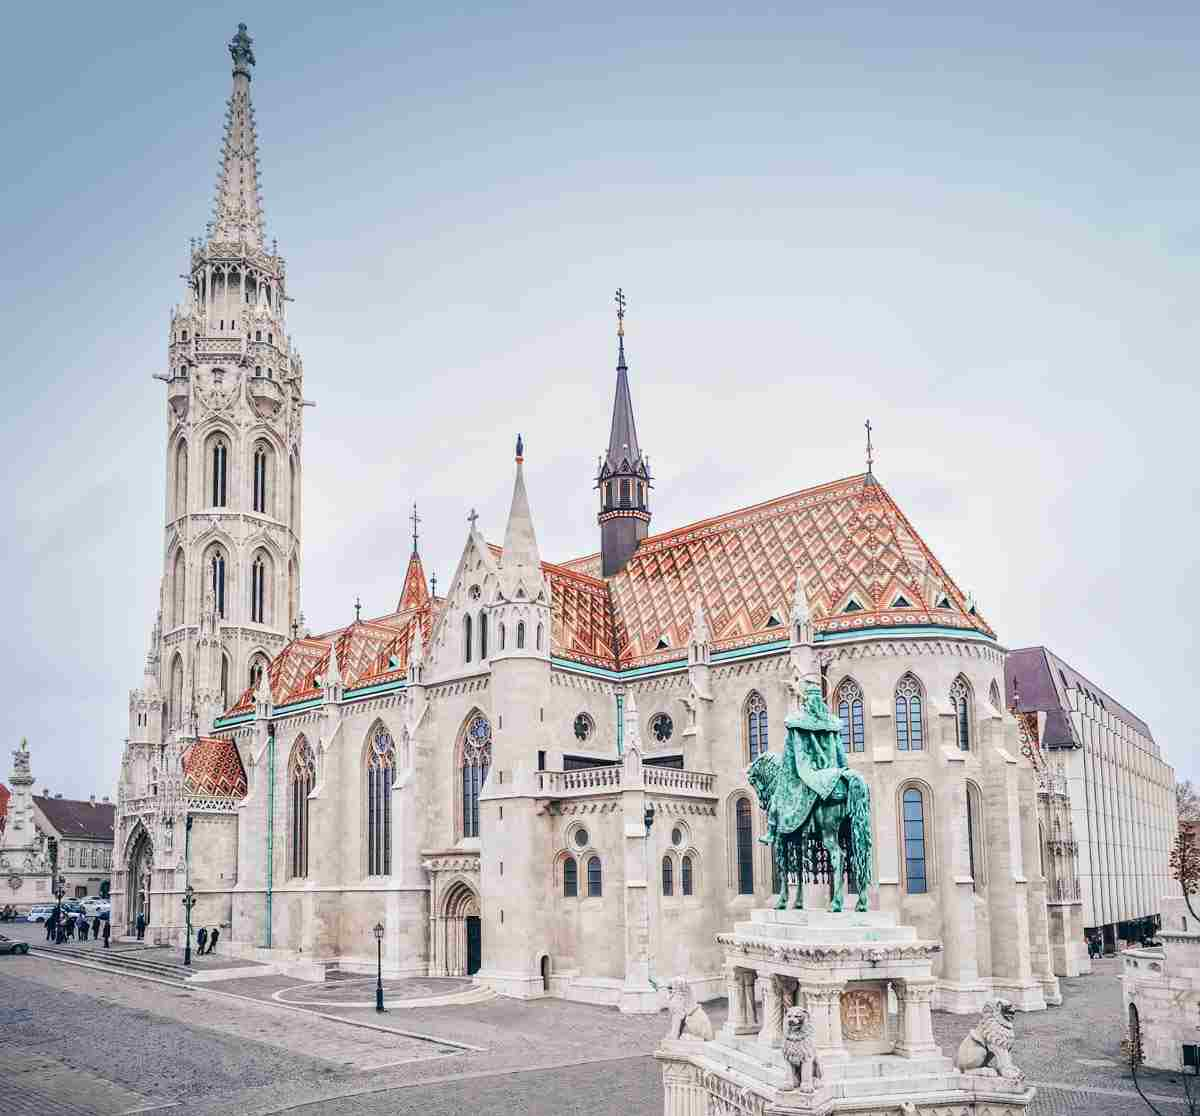 Budapest must-see sights: The eclectic architecture and famous tiled roof of the Matthias Church